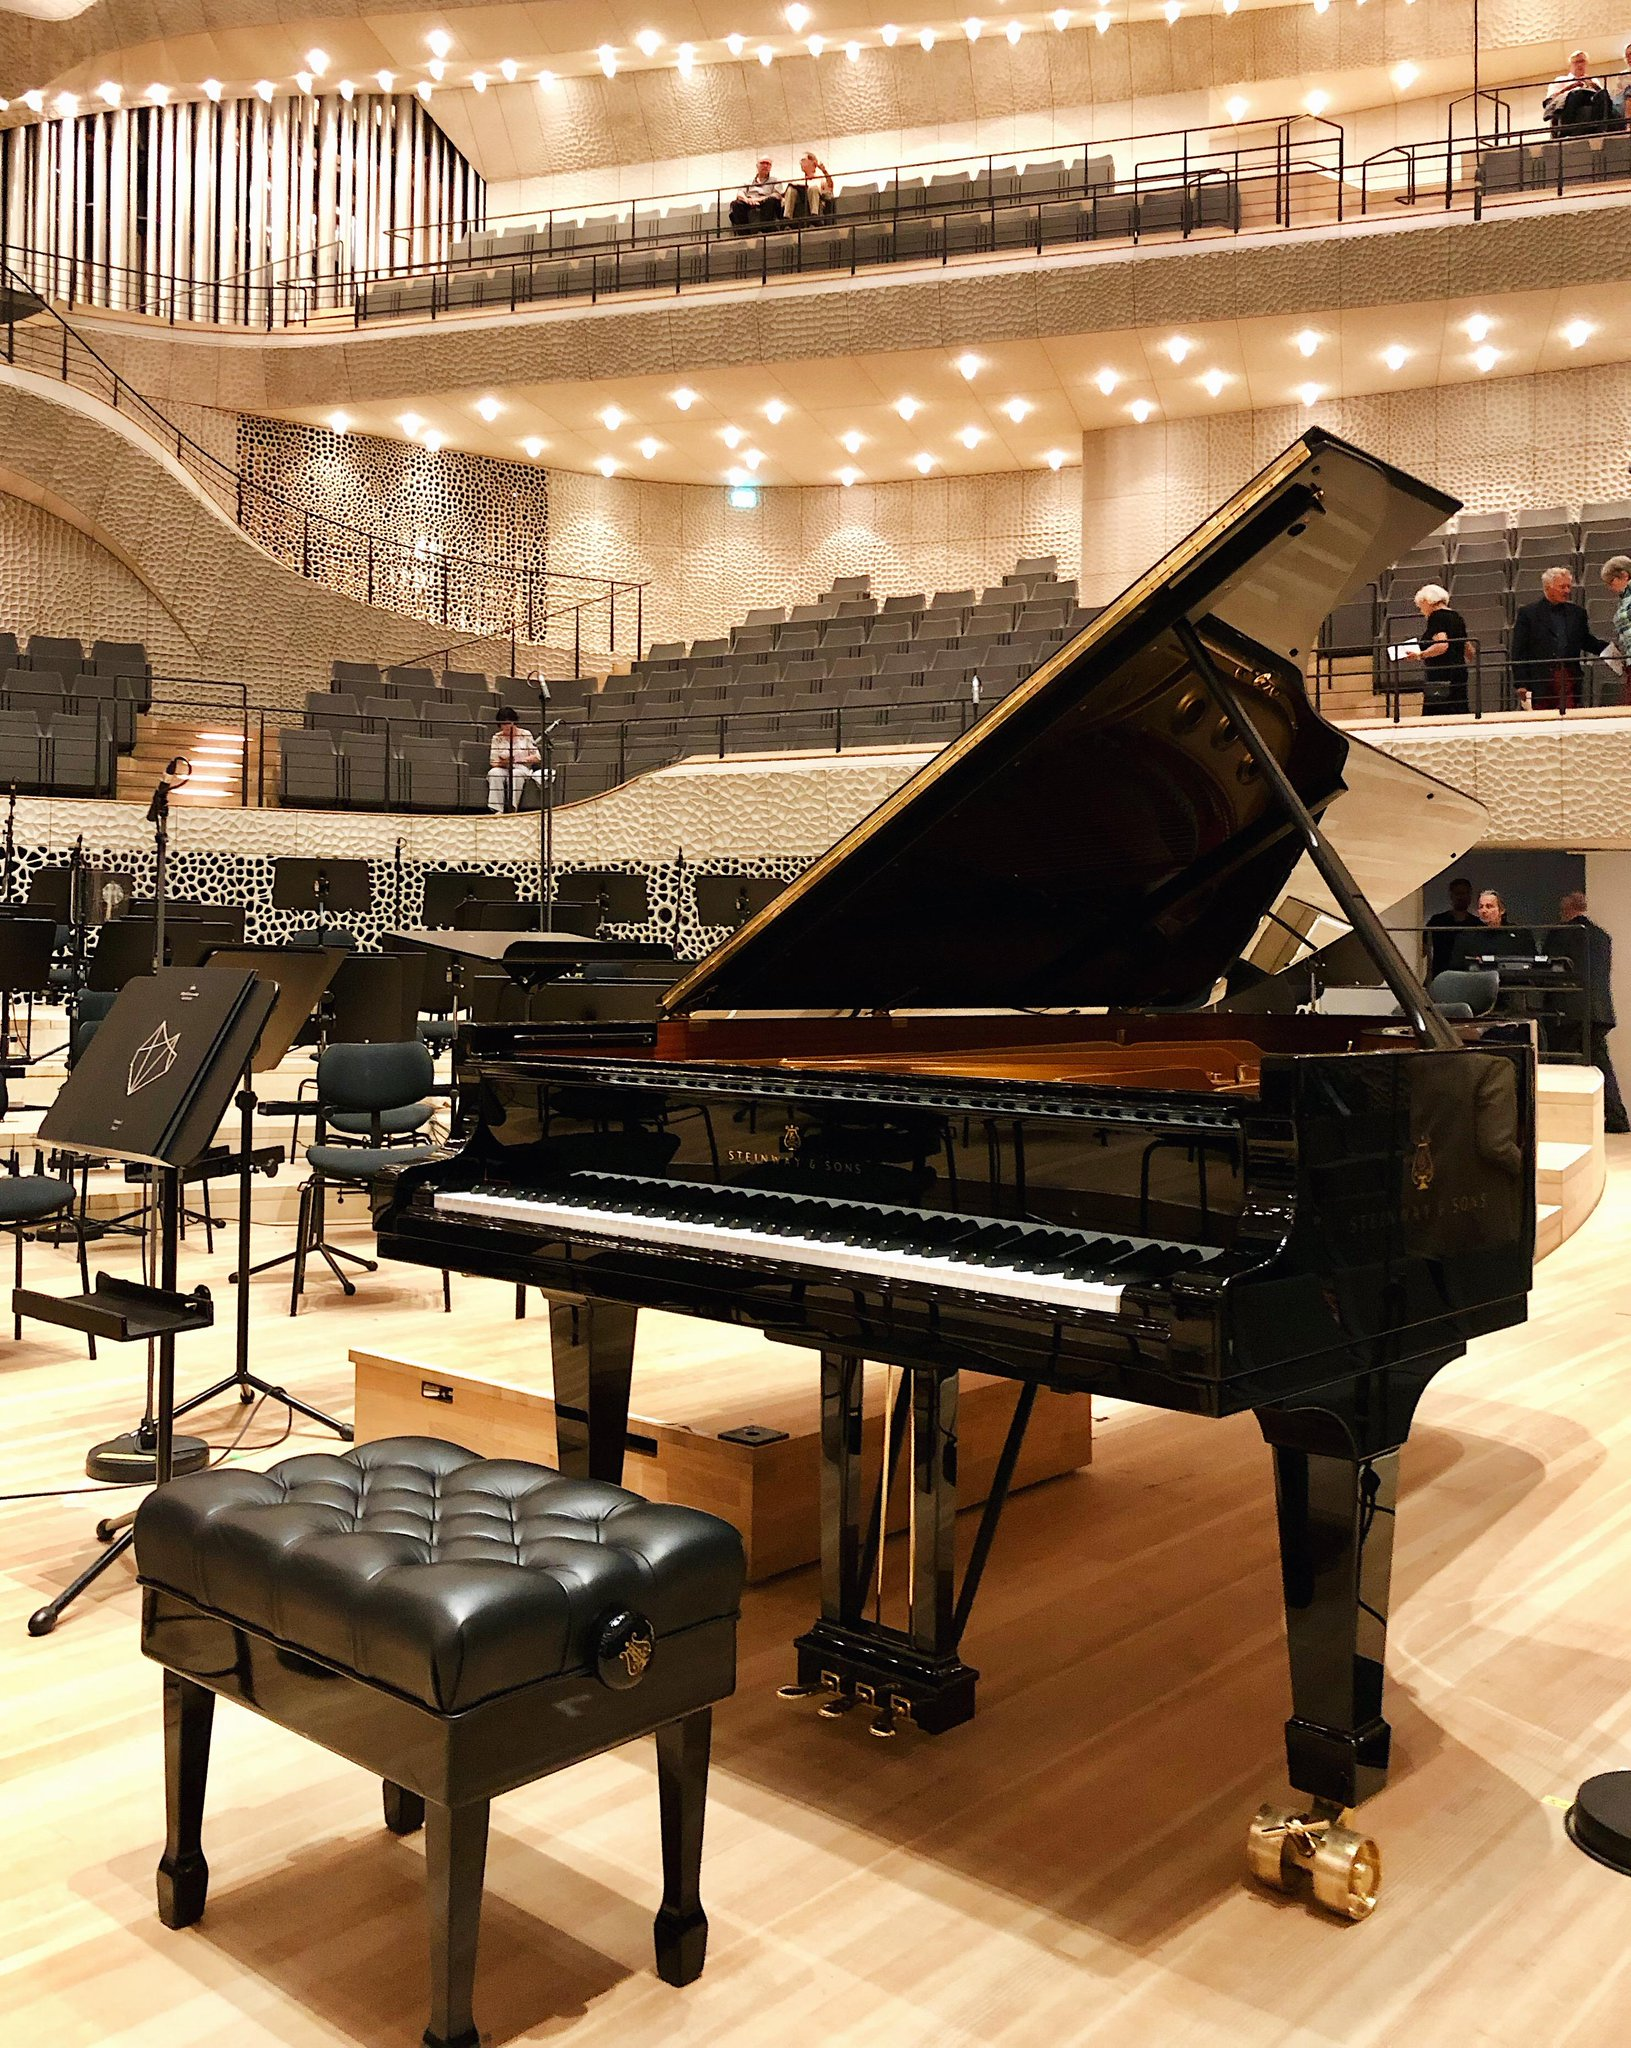 Reloaded twaddle – RT @SteinwayAndSons: The most acoustically-advanced concert halls in the world r...